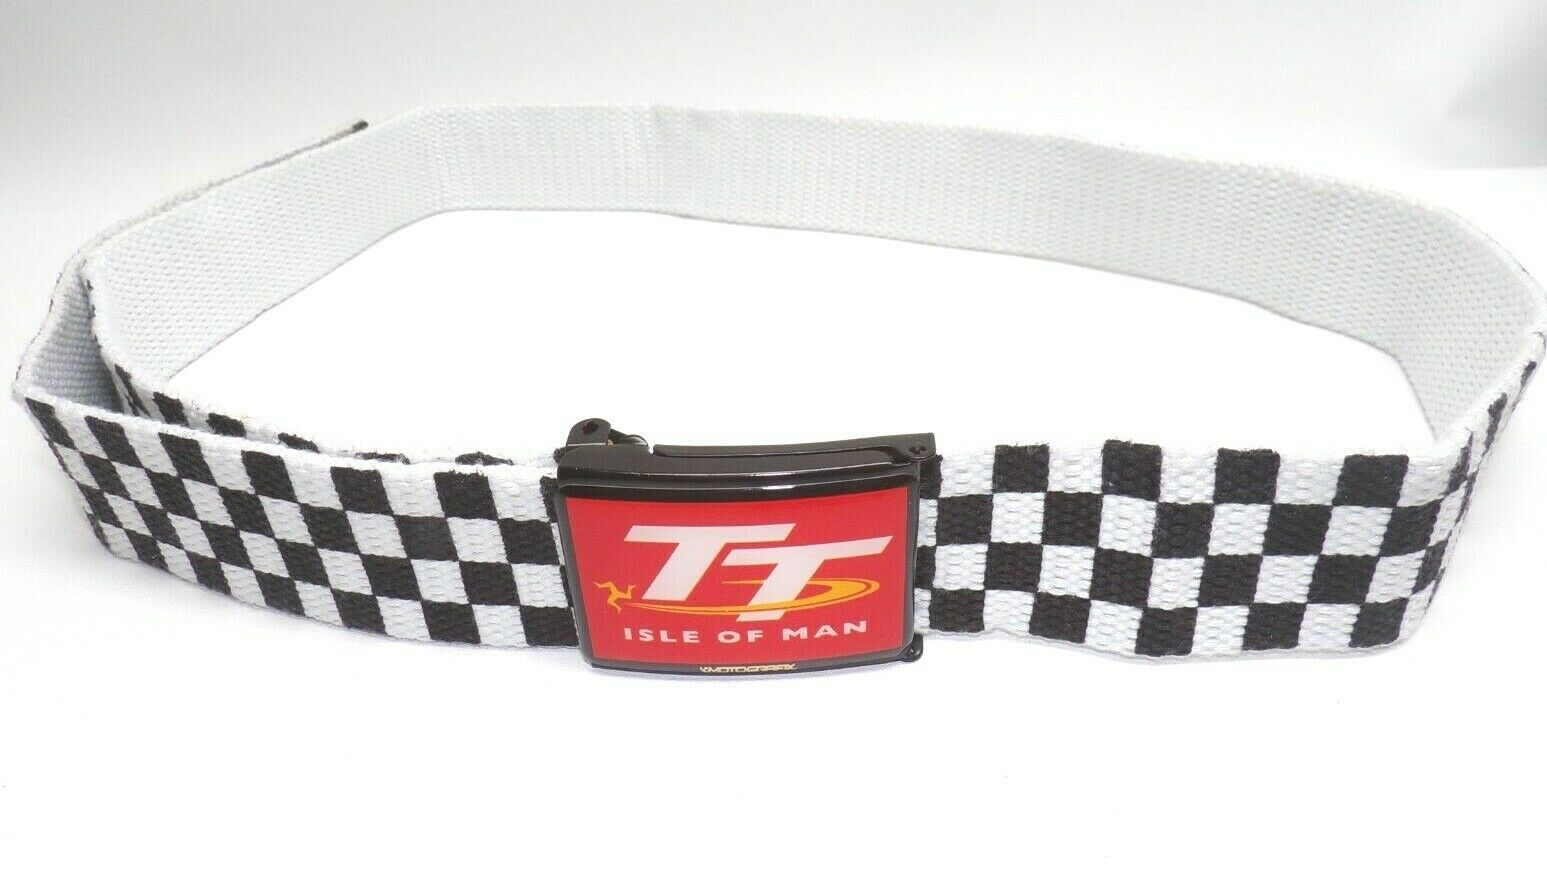 Chequed WeaveMetal Buckle Belt with Isle of man Official TT Gel badge